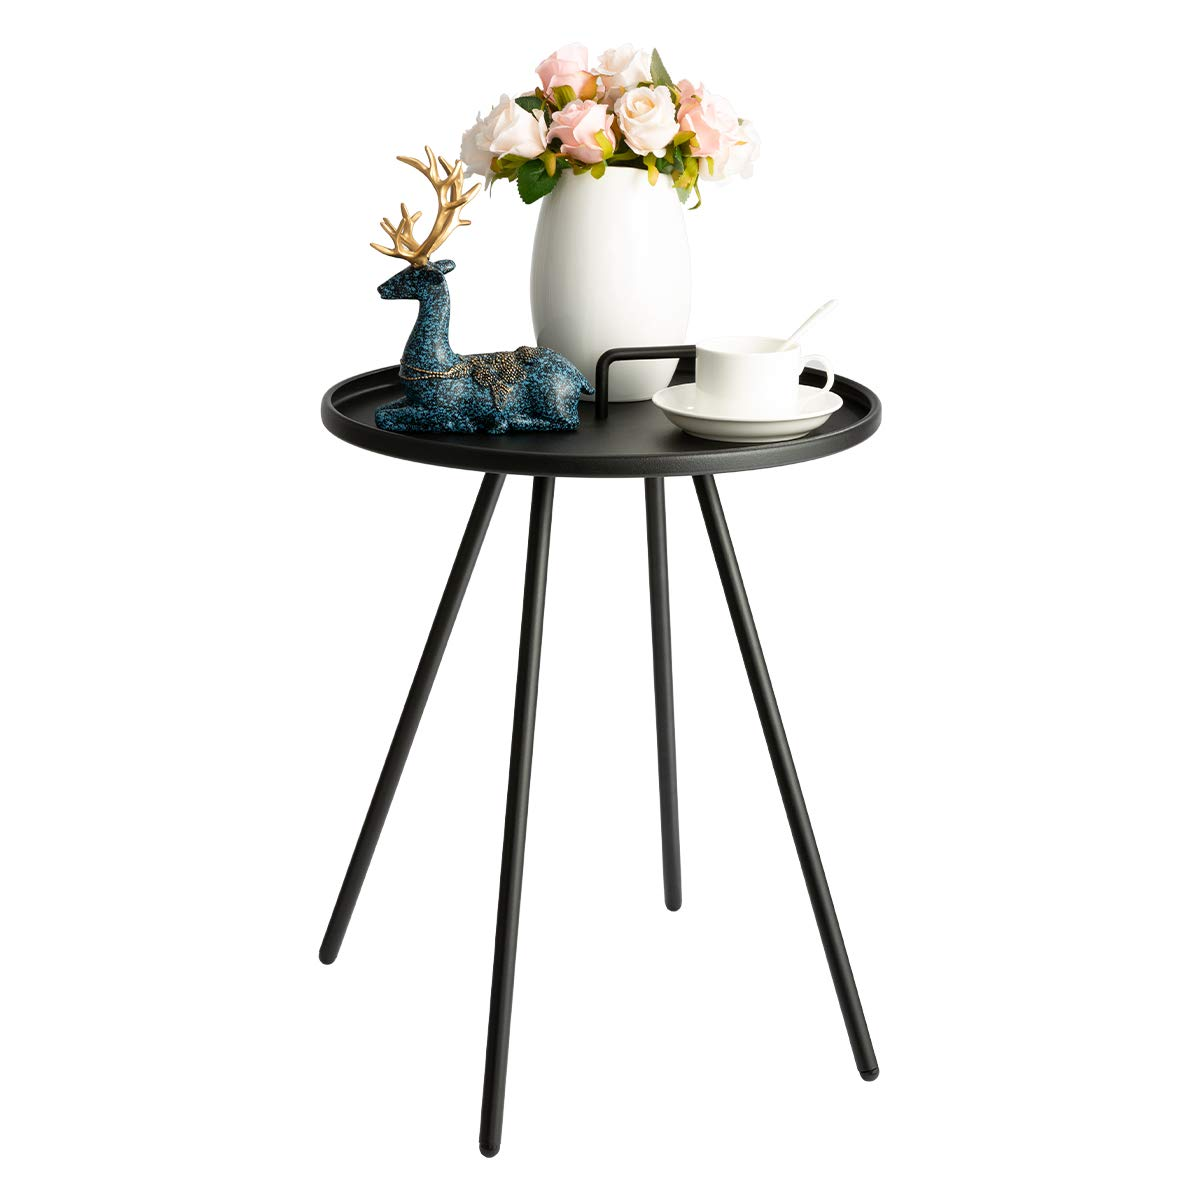 HollyHOME Convenient Patio Steel Side Table with Handle, Accent Small Coffee/Snack Table, Round Metal End Table for Outdoor or Indoor Use, (H) 19.50'' x(D) 16.38'', Black by HollyHOME